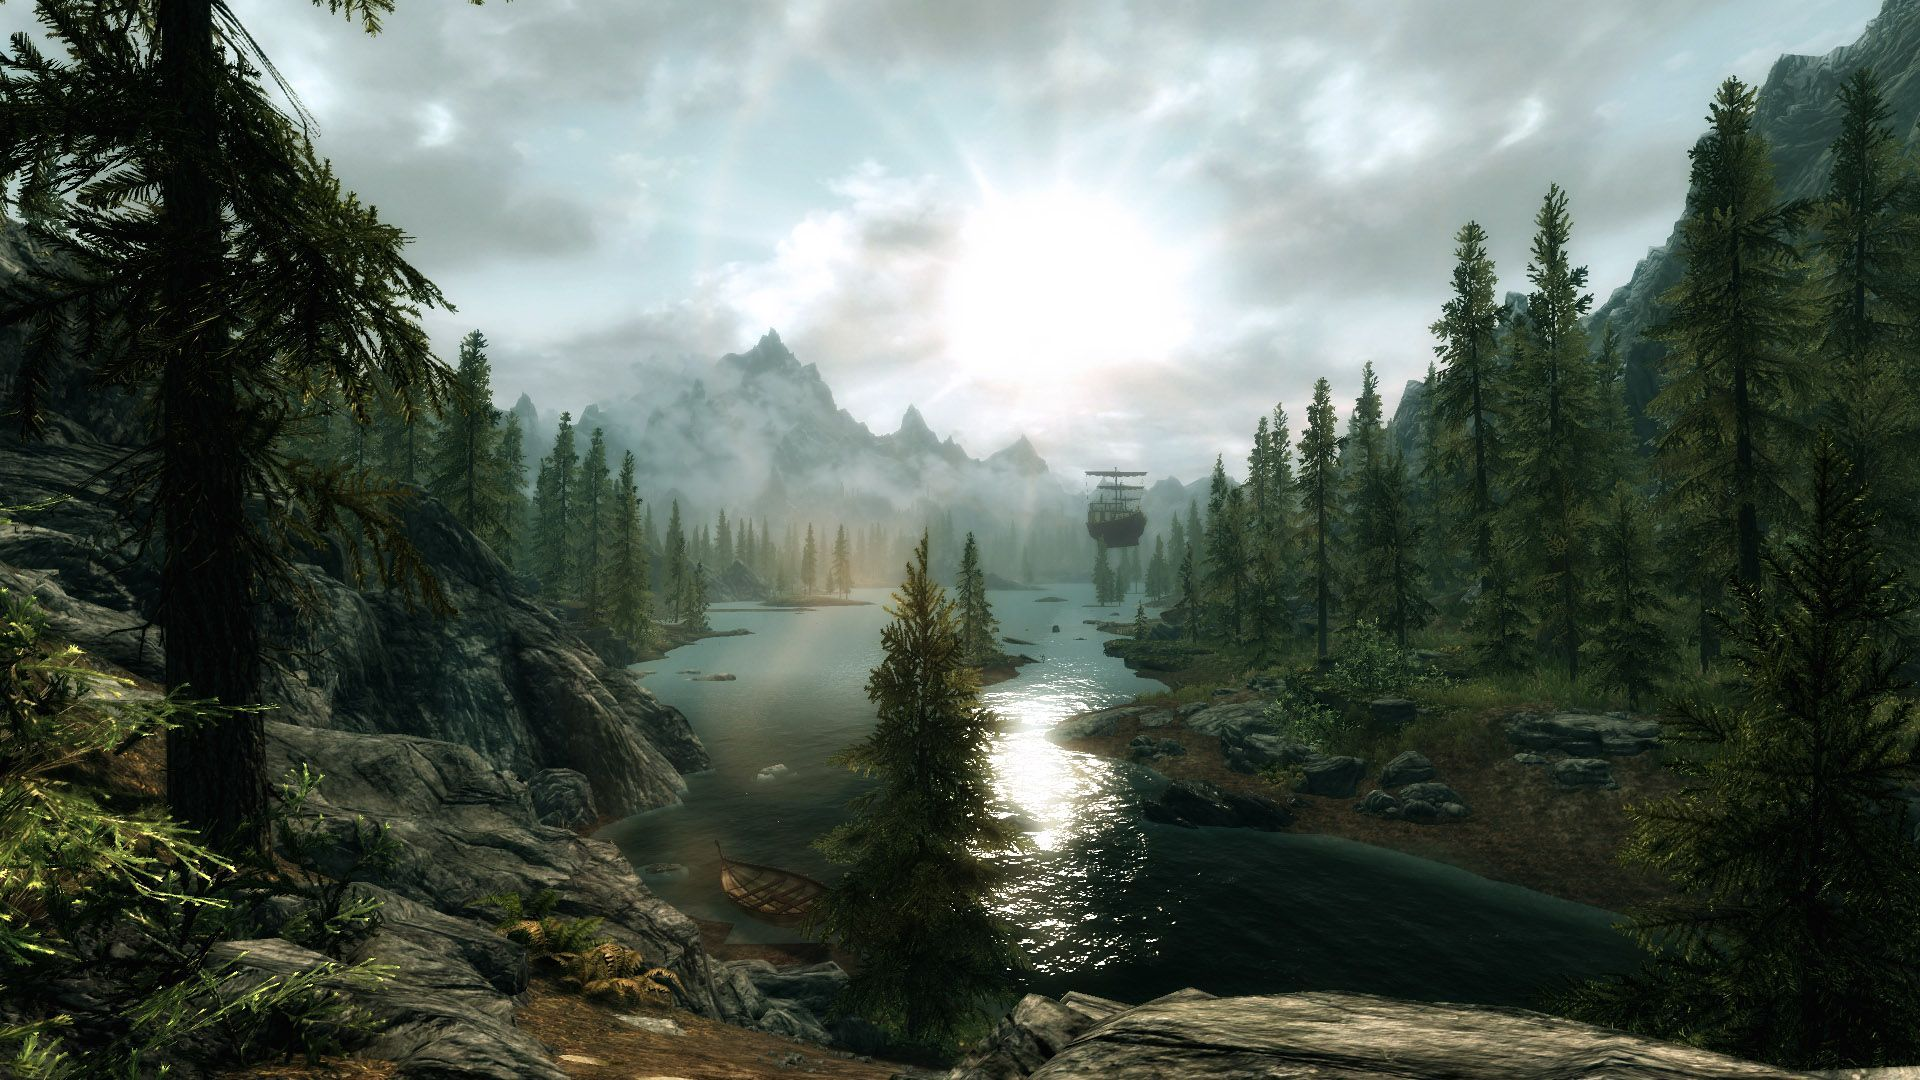 skyrim scenery wallpaper - sf wallpaper